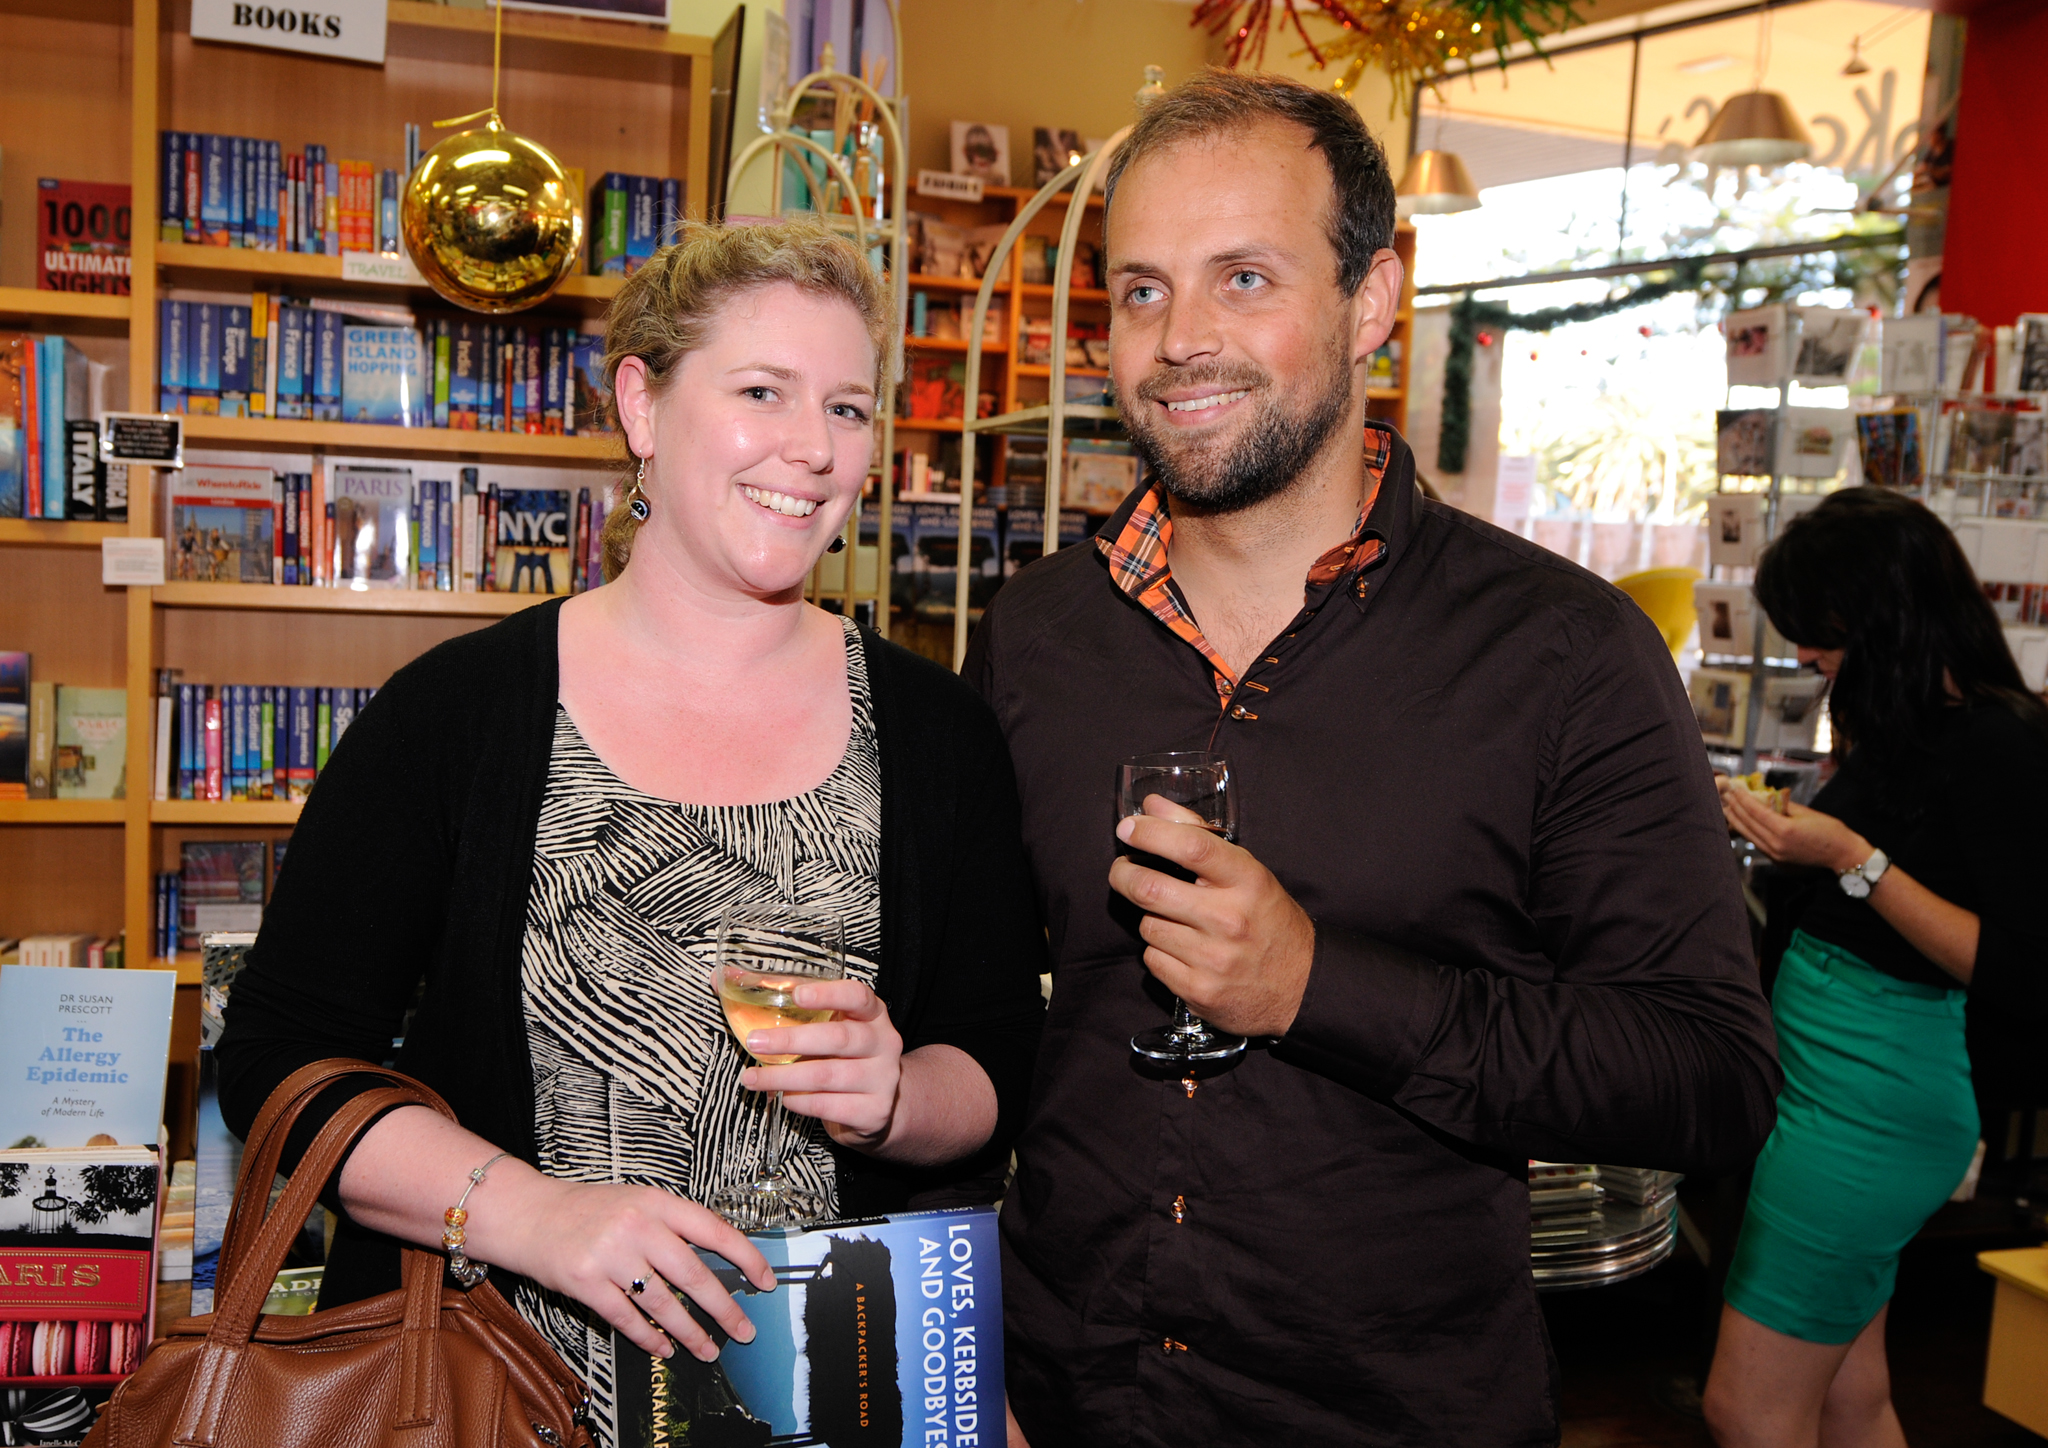 Guests Enjoying the Book Launch